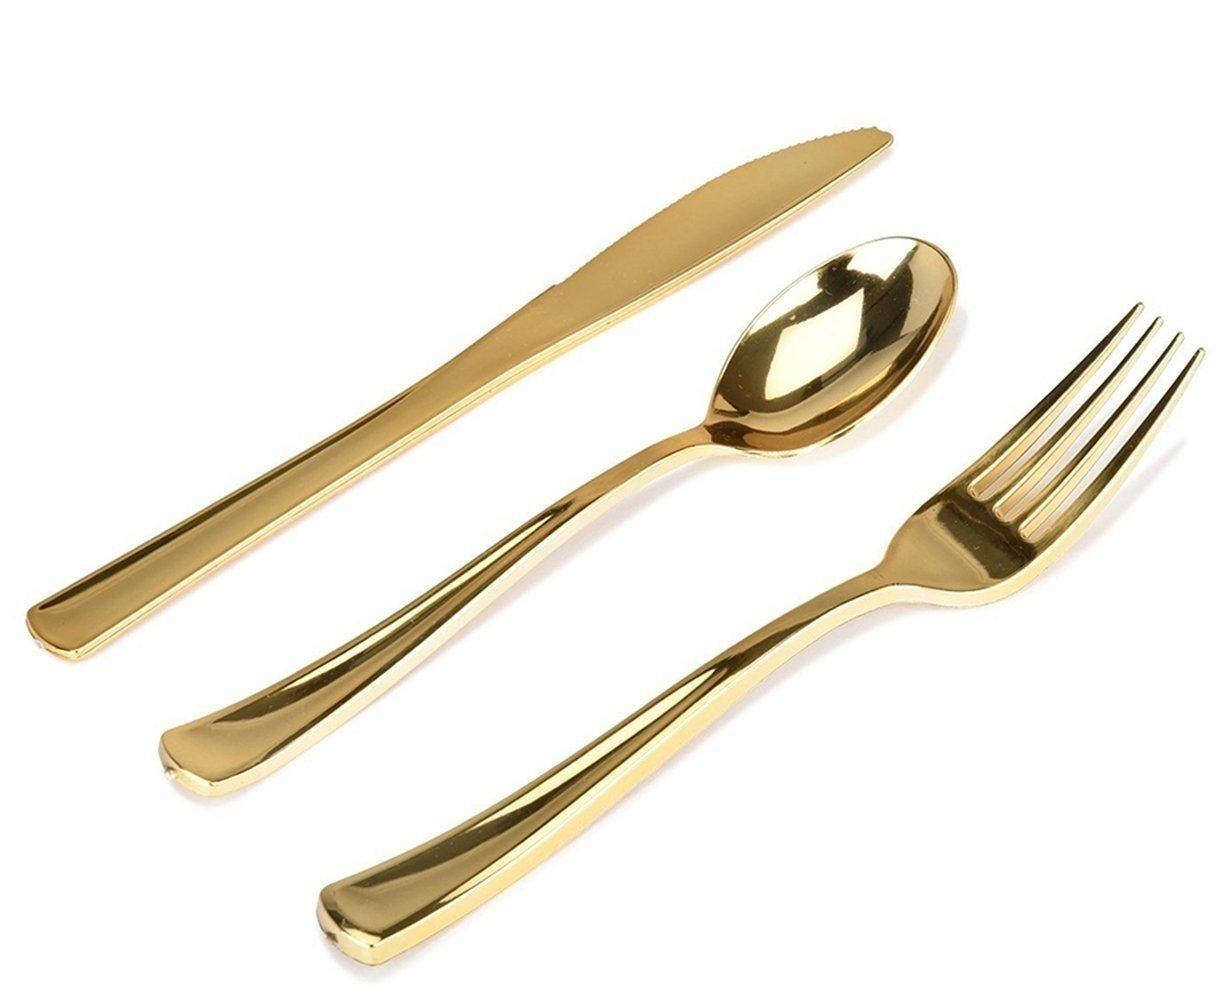 300 Gold Plastic Silverware Set - Elegant Plastic Cutlery- Disposable Flatware - 100 Plastic Forks, 100 Plastic Spoons, 100 Plastic Knives Heavy Duty Silverware for Party Bulk - Stock Your Home